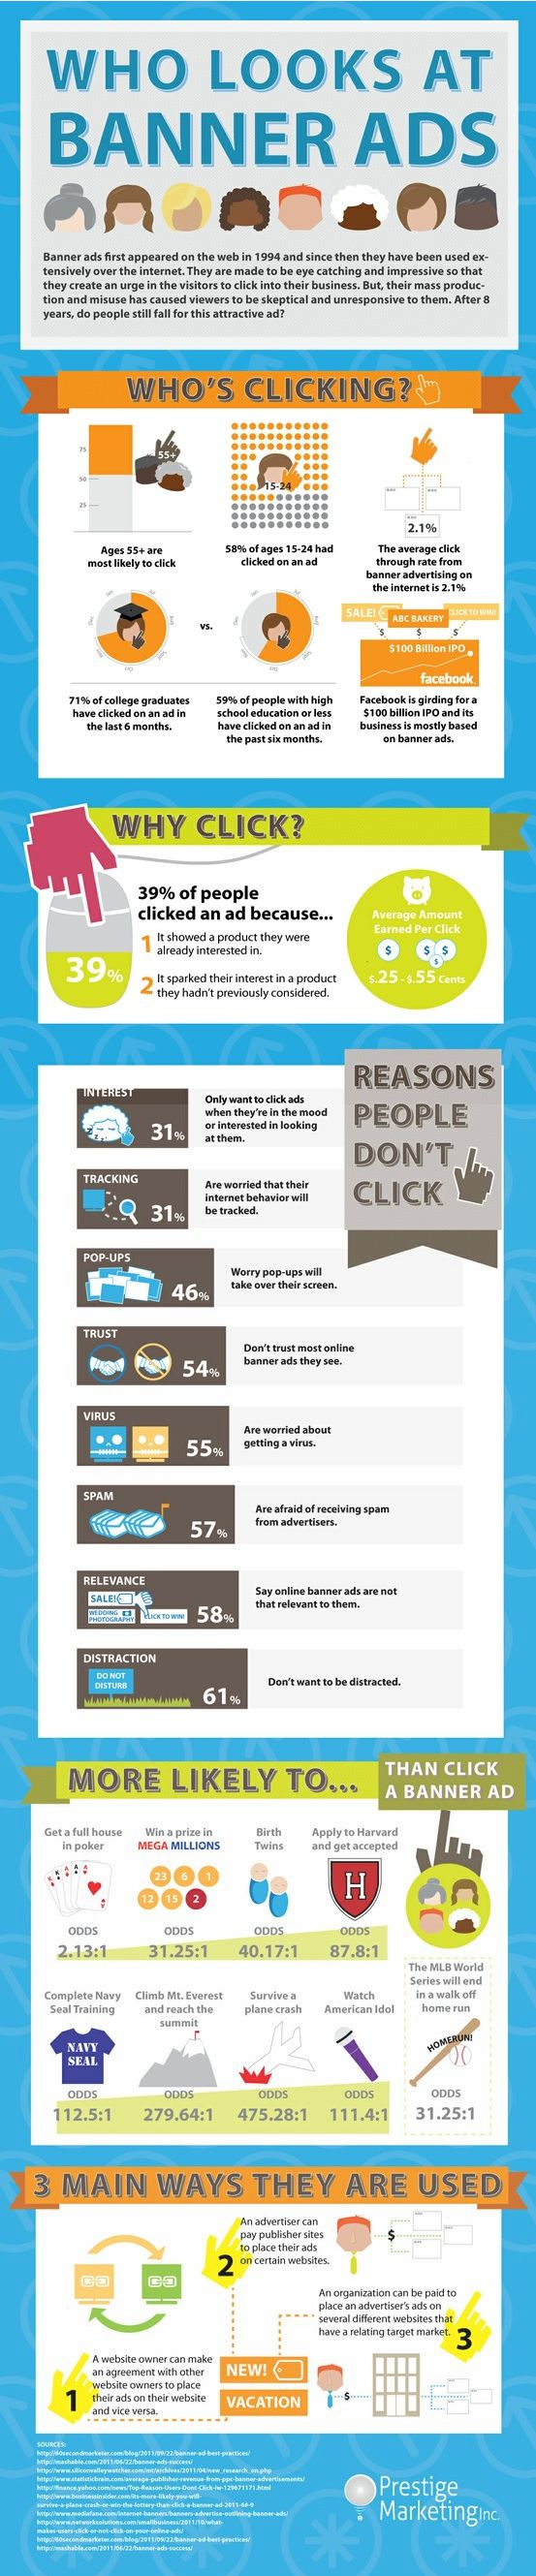 Look at My Banner Ads Dammit! [Infographic] Posted 5/11/12 #infographics #social_media #technology